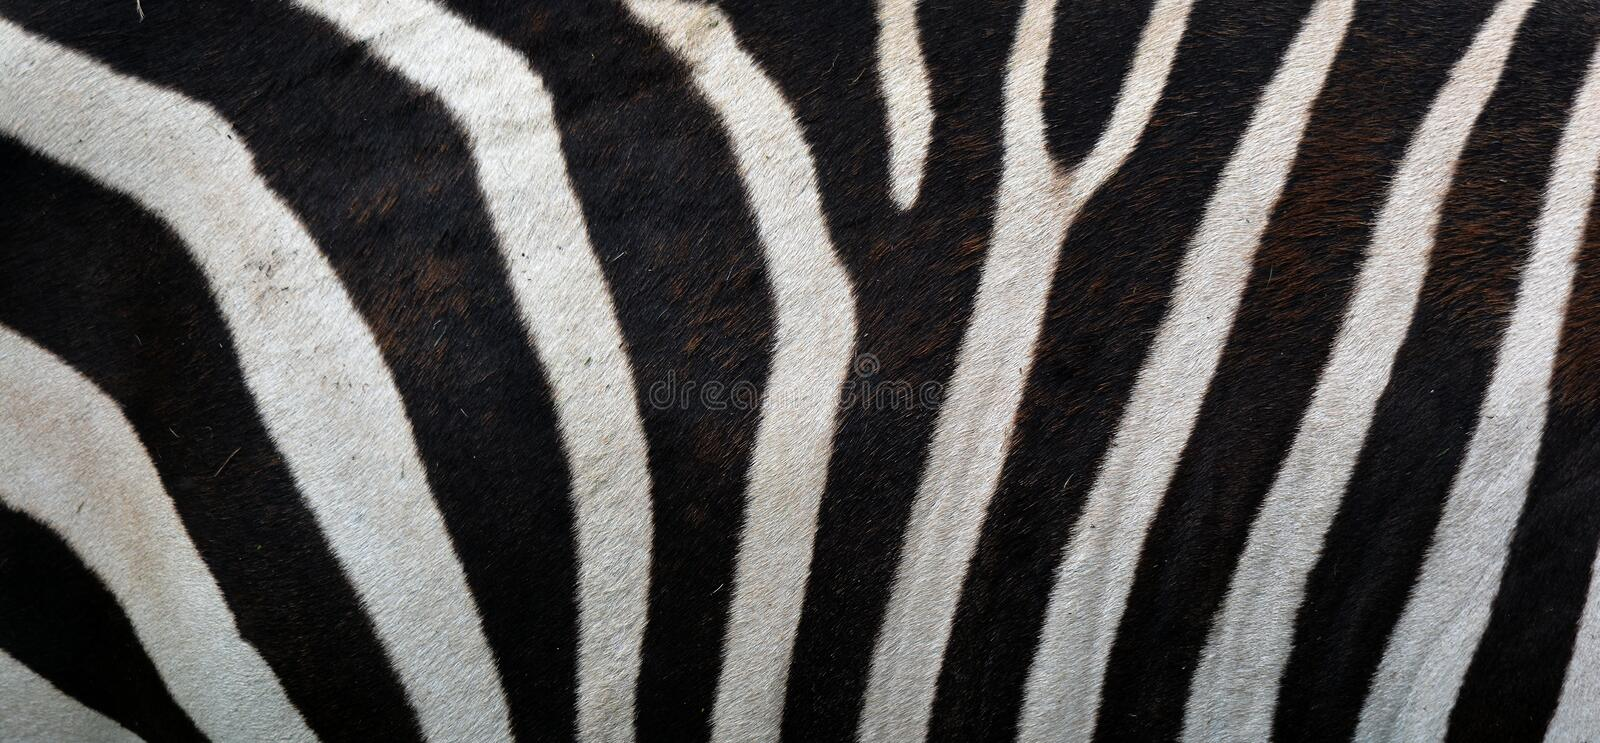 Skin of Zebras are several species of African equids. Zebras are several species of African equids horse family united by their distinctive black and white royalty free stock photography